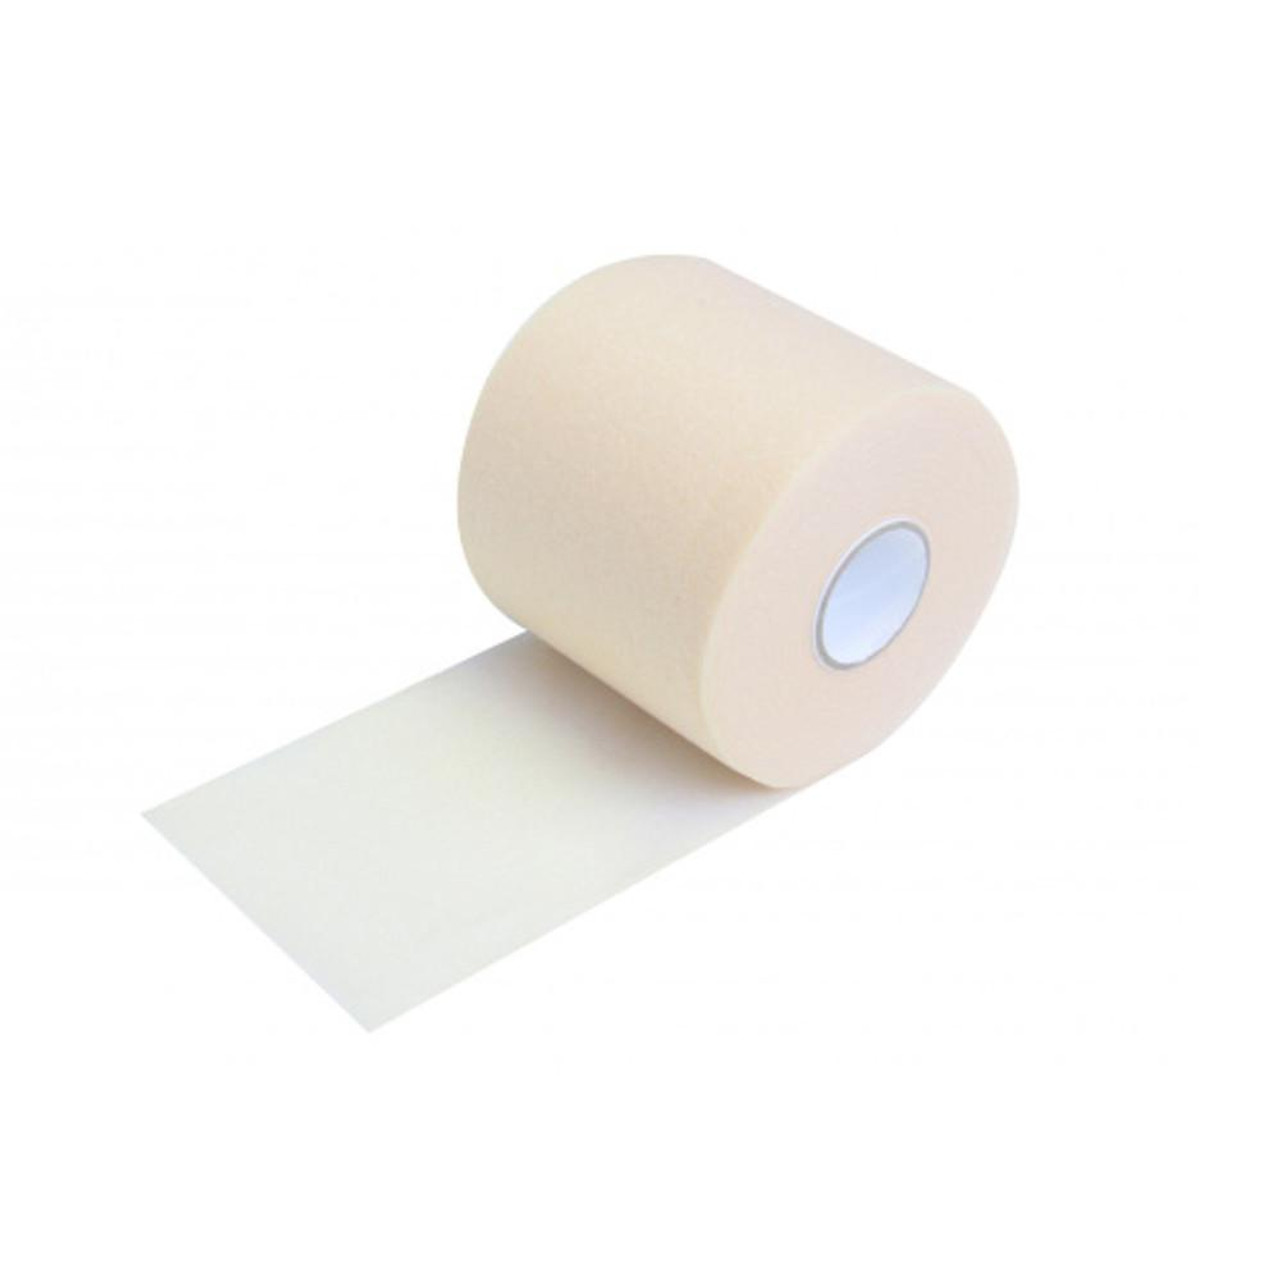 Mueller Sports Foam Pre-Taping Physio Support Underwrap Roll Skin Protection